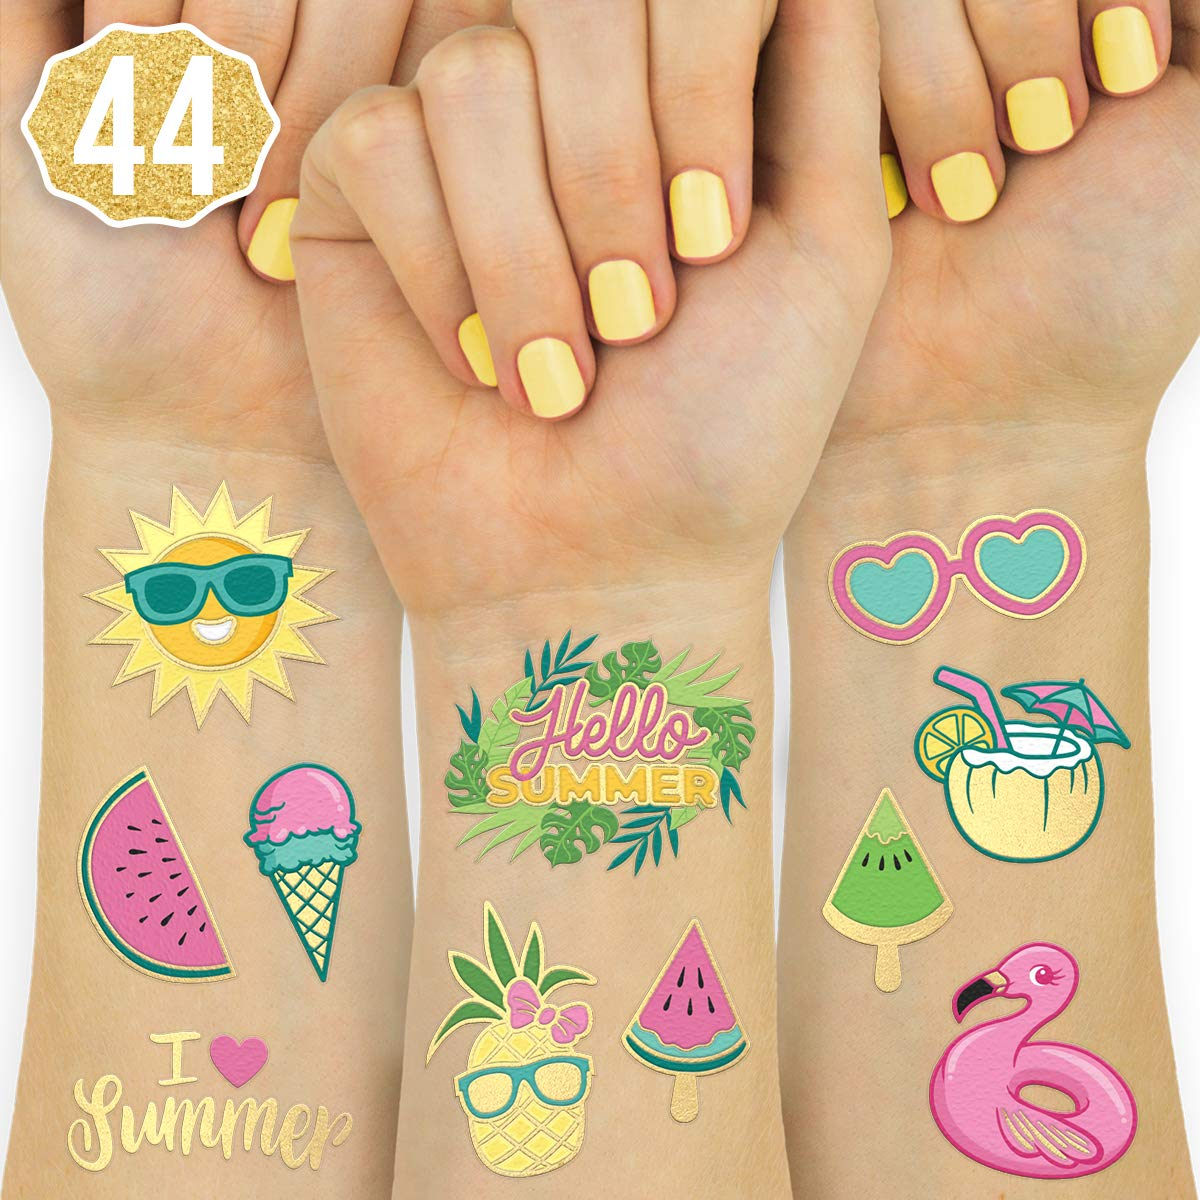 xo, Fetti Summer Pool Party Temporary Tattoos for Kids - Glitter styles | Birthday Party Supplies, Beach Party Favors + Tropical Decor